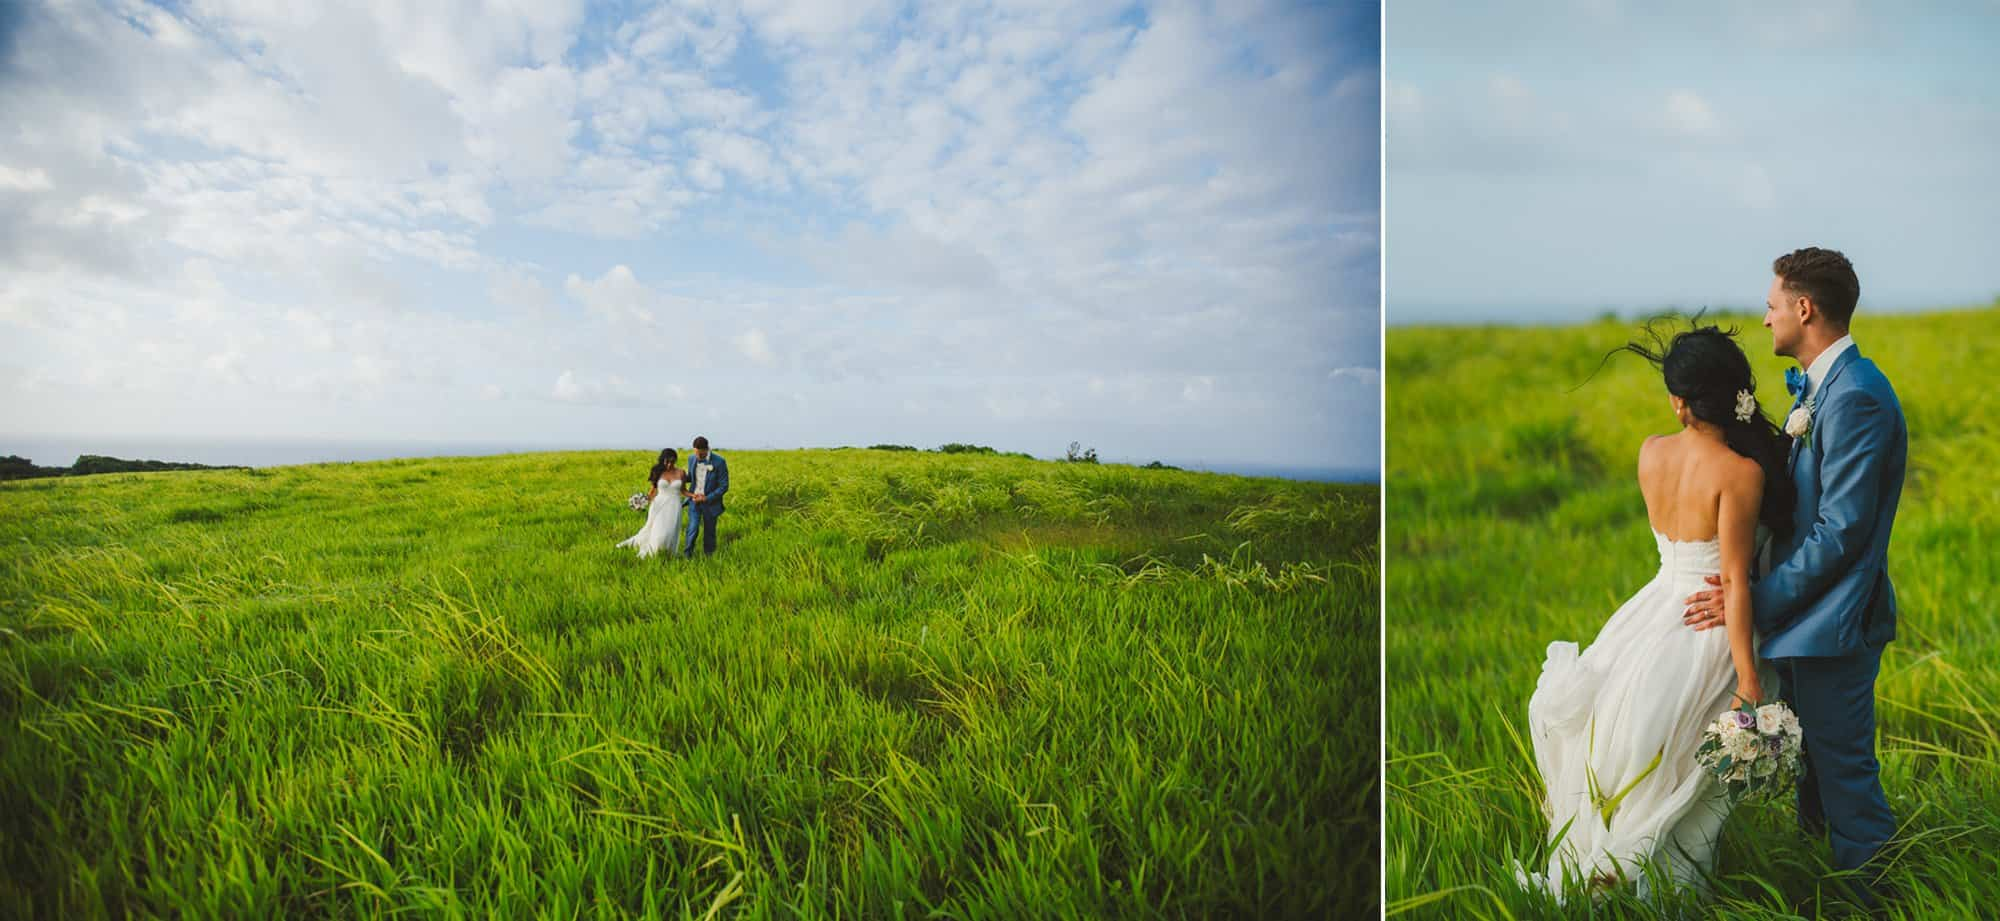 maui-wedding-photographer-40a